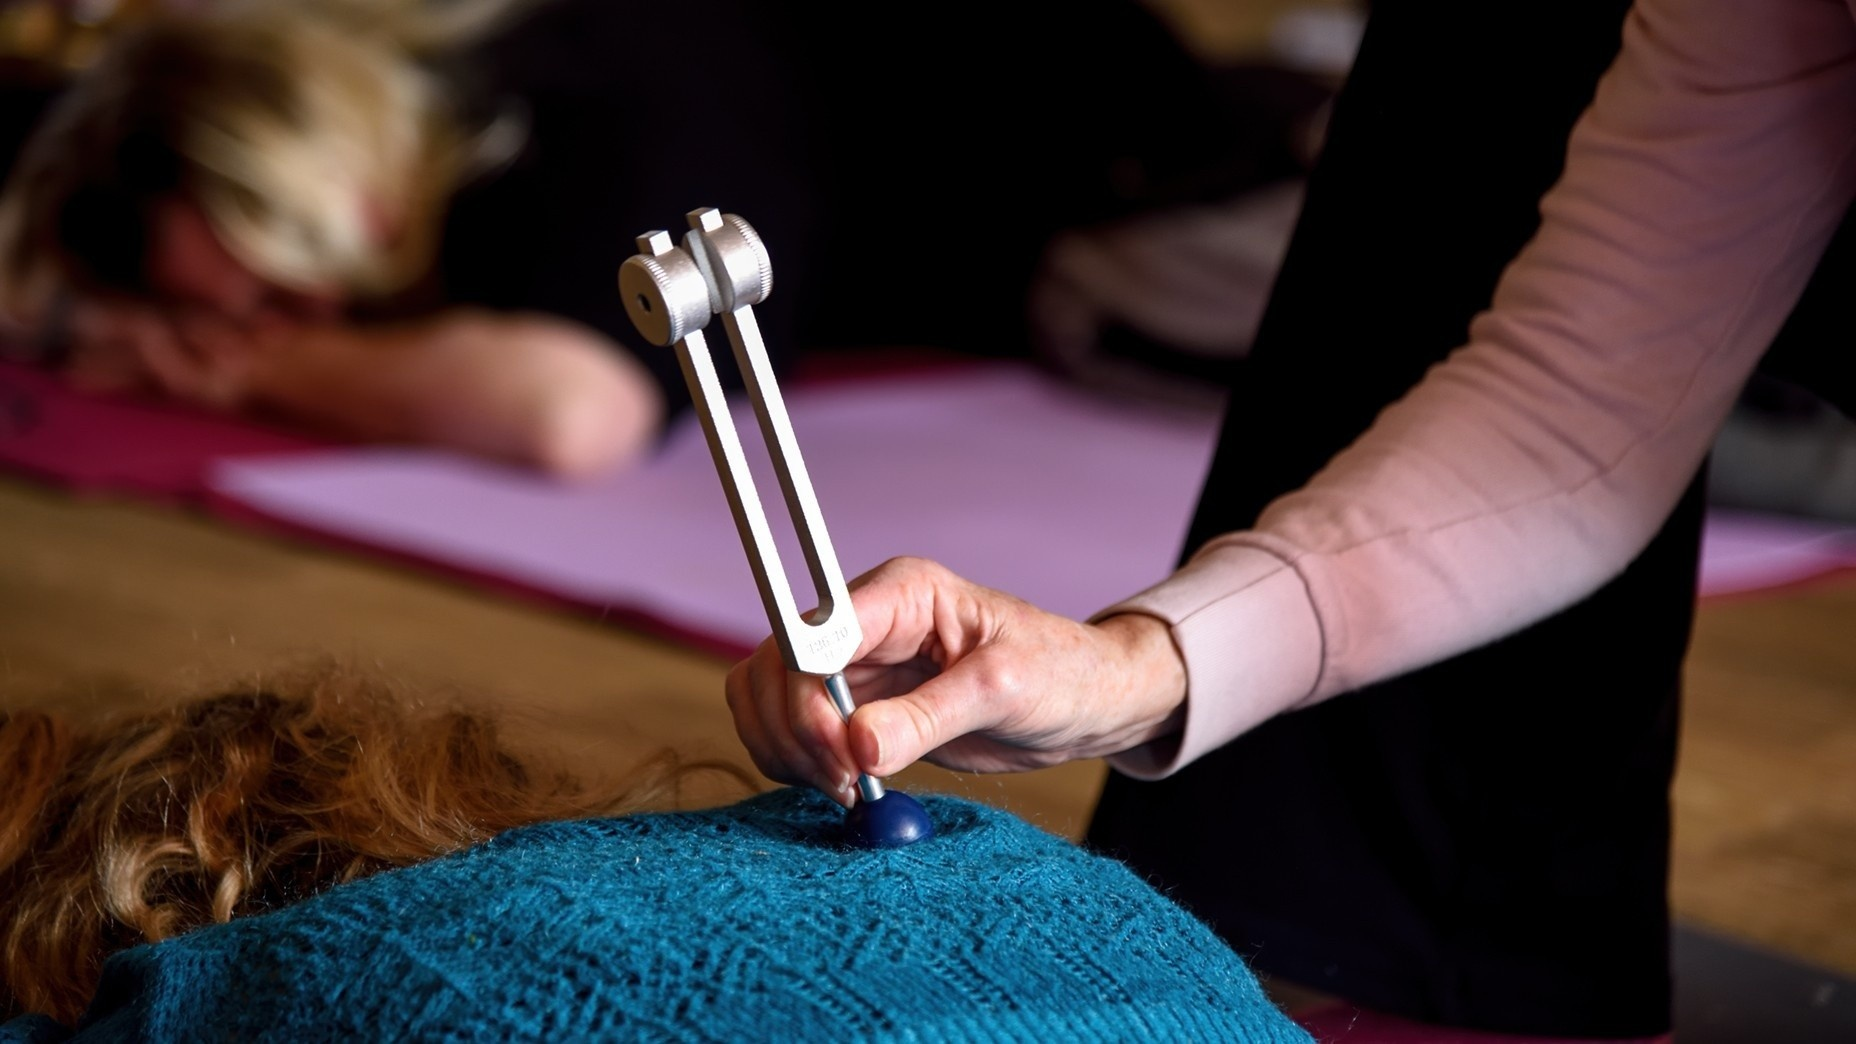 Short Sound Healing Course: How to Heal Effectively With Weighted Tuning Forks